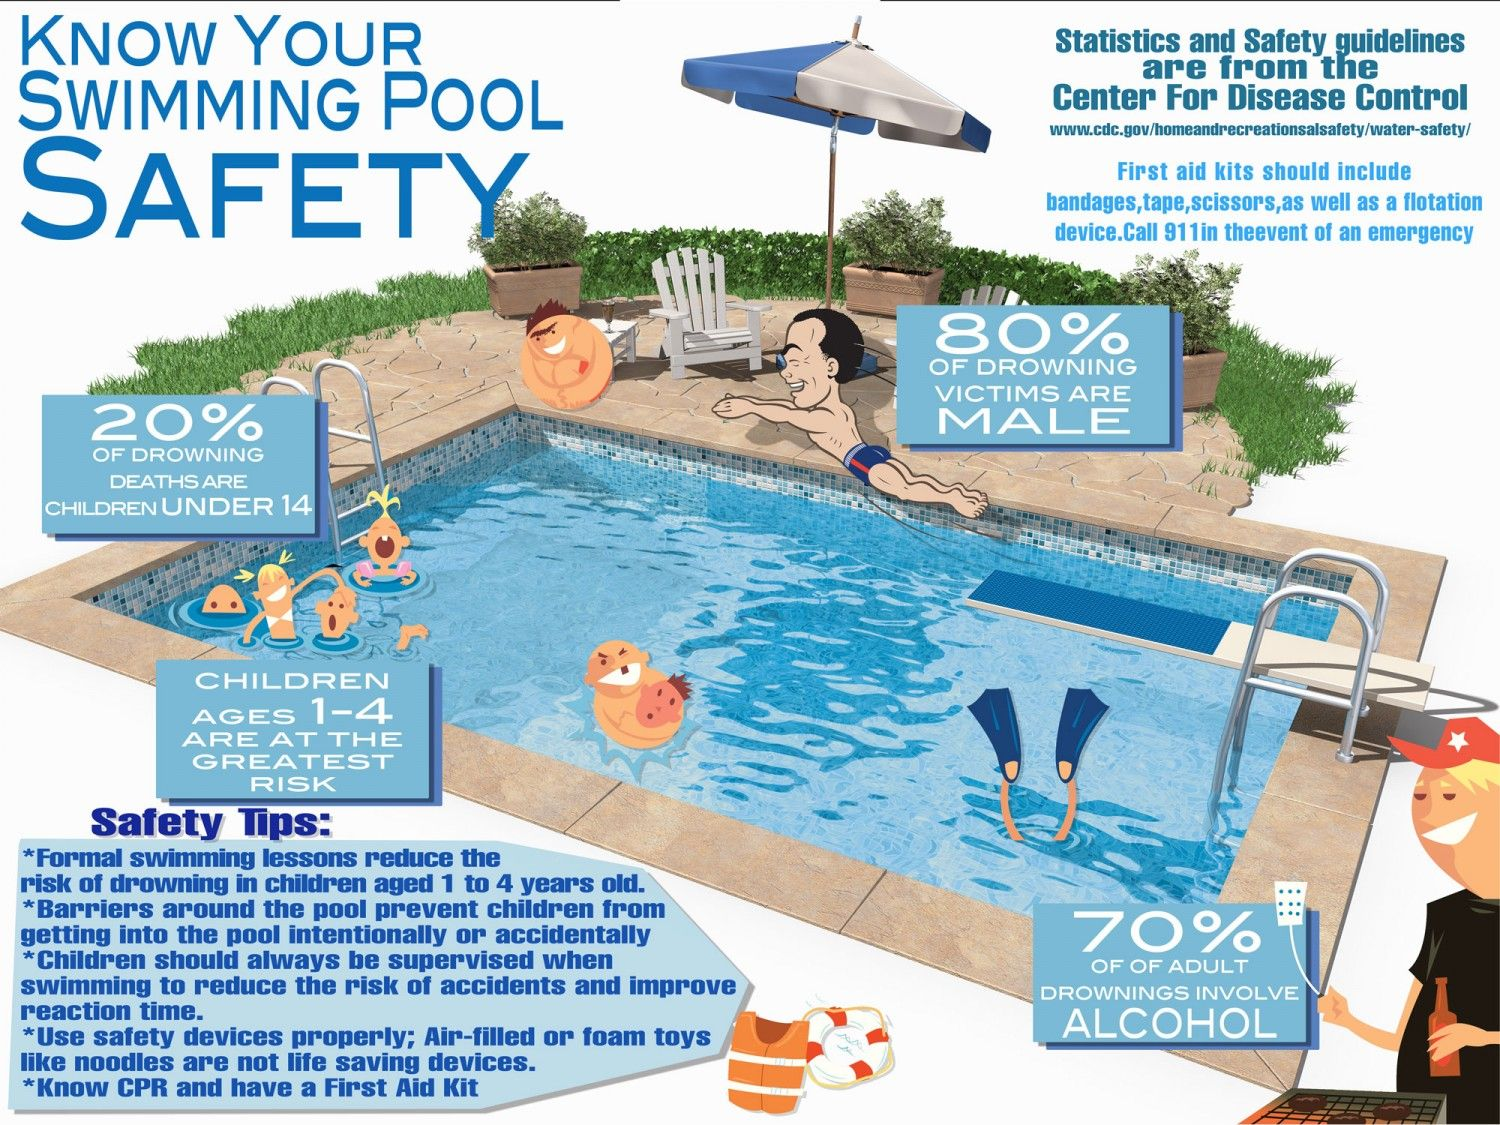 Swimming Pool Change Your Life : Know your swimming pool safety it can make a difference